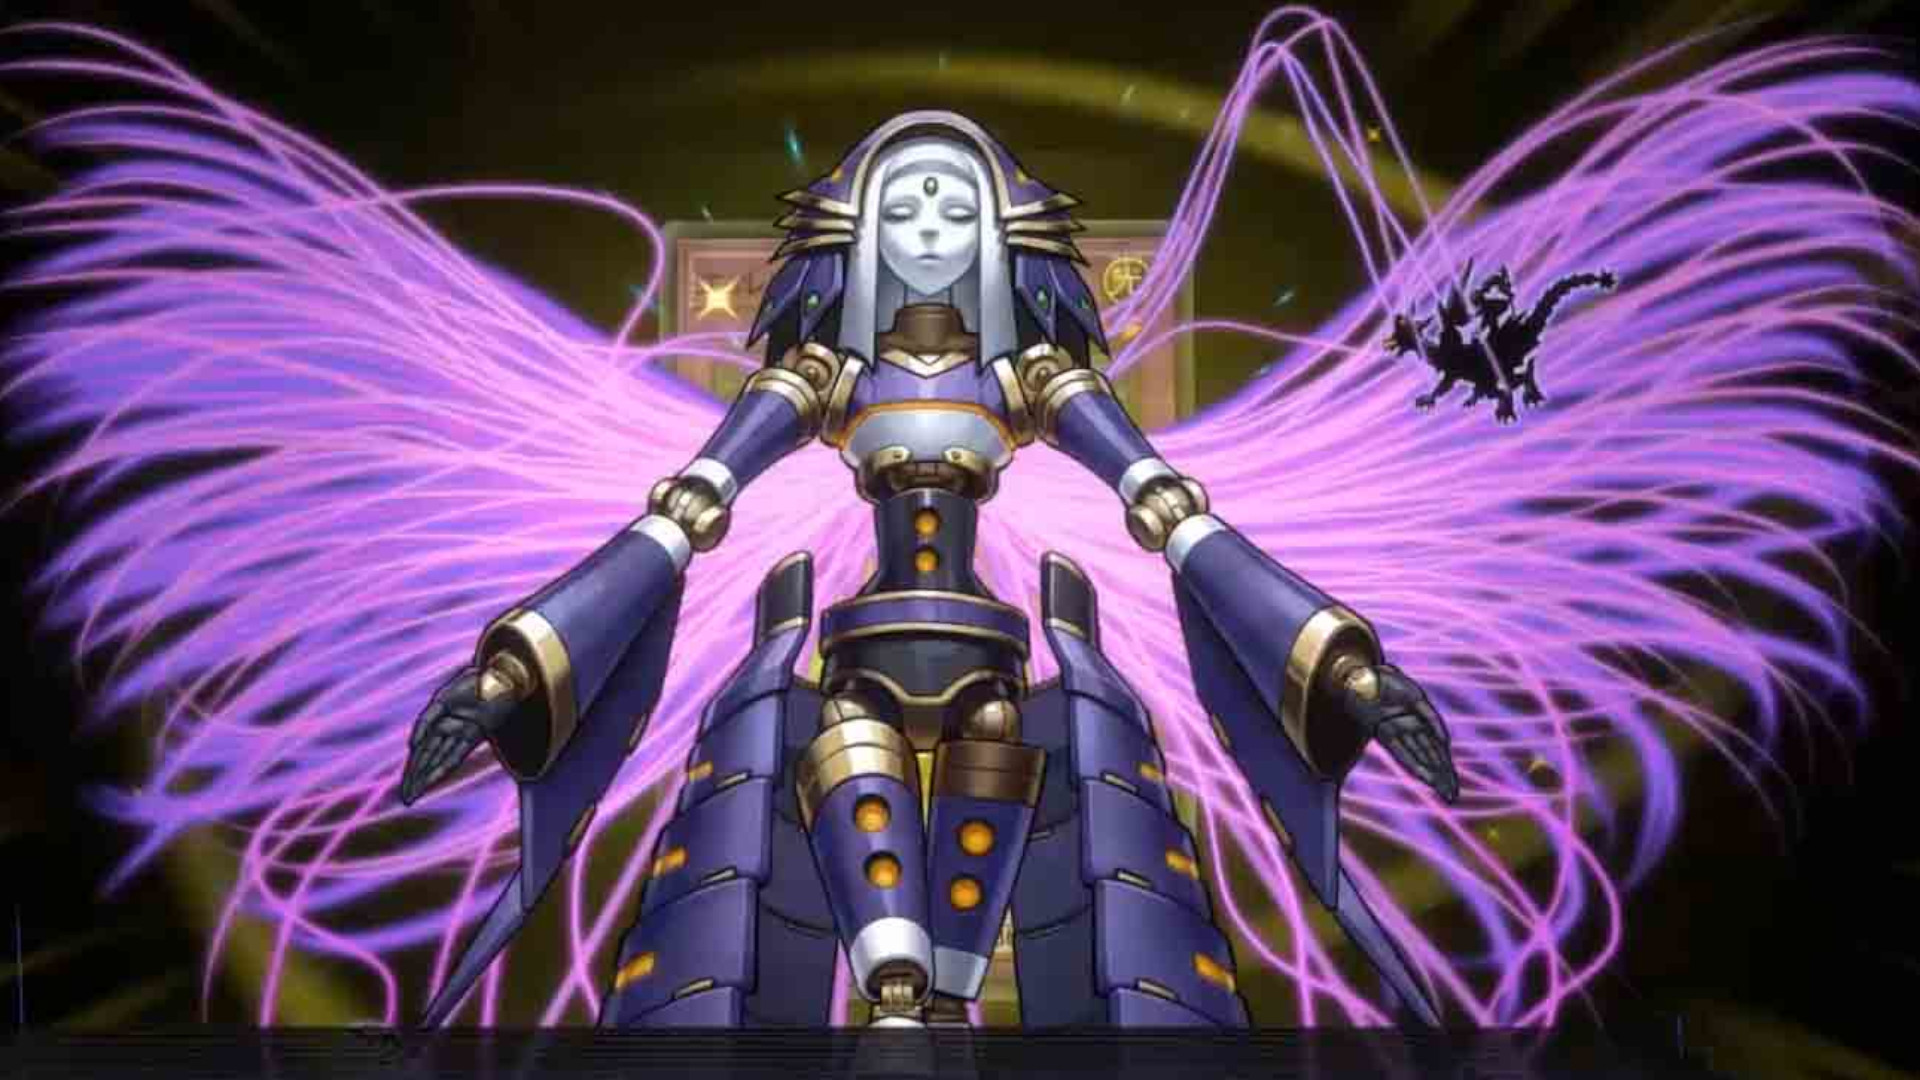 Yu-Gi-Oh: Master Duel is free-to-play and features 10,000 cards